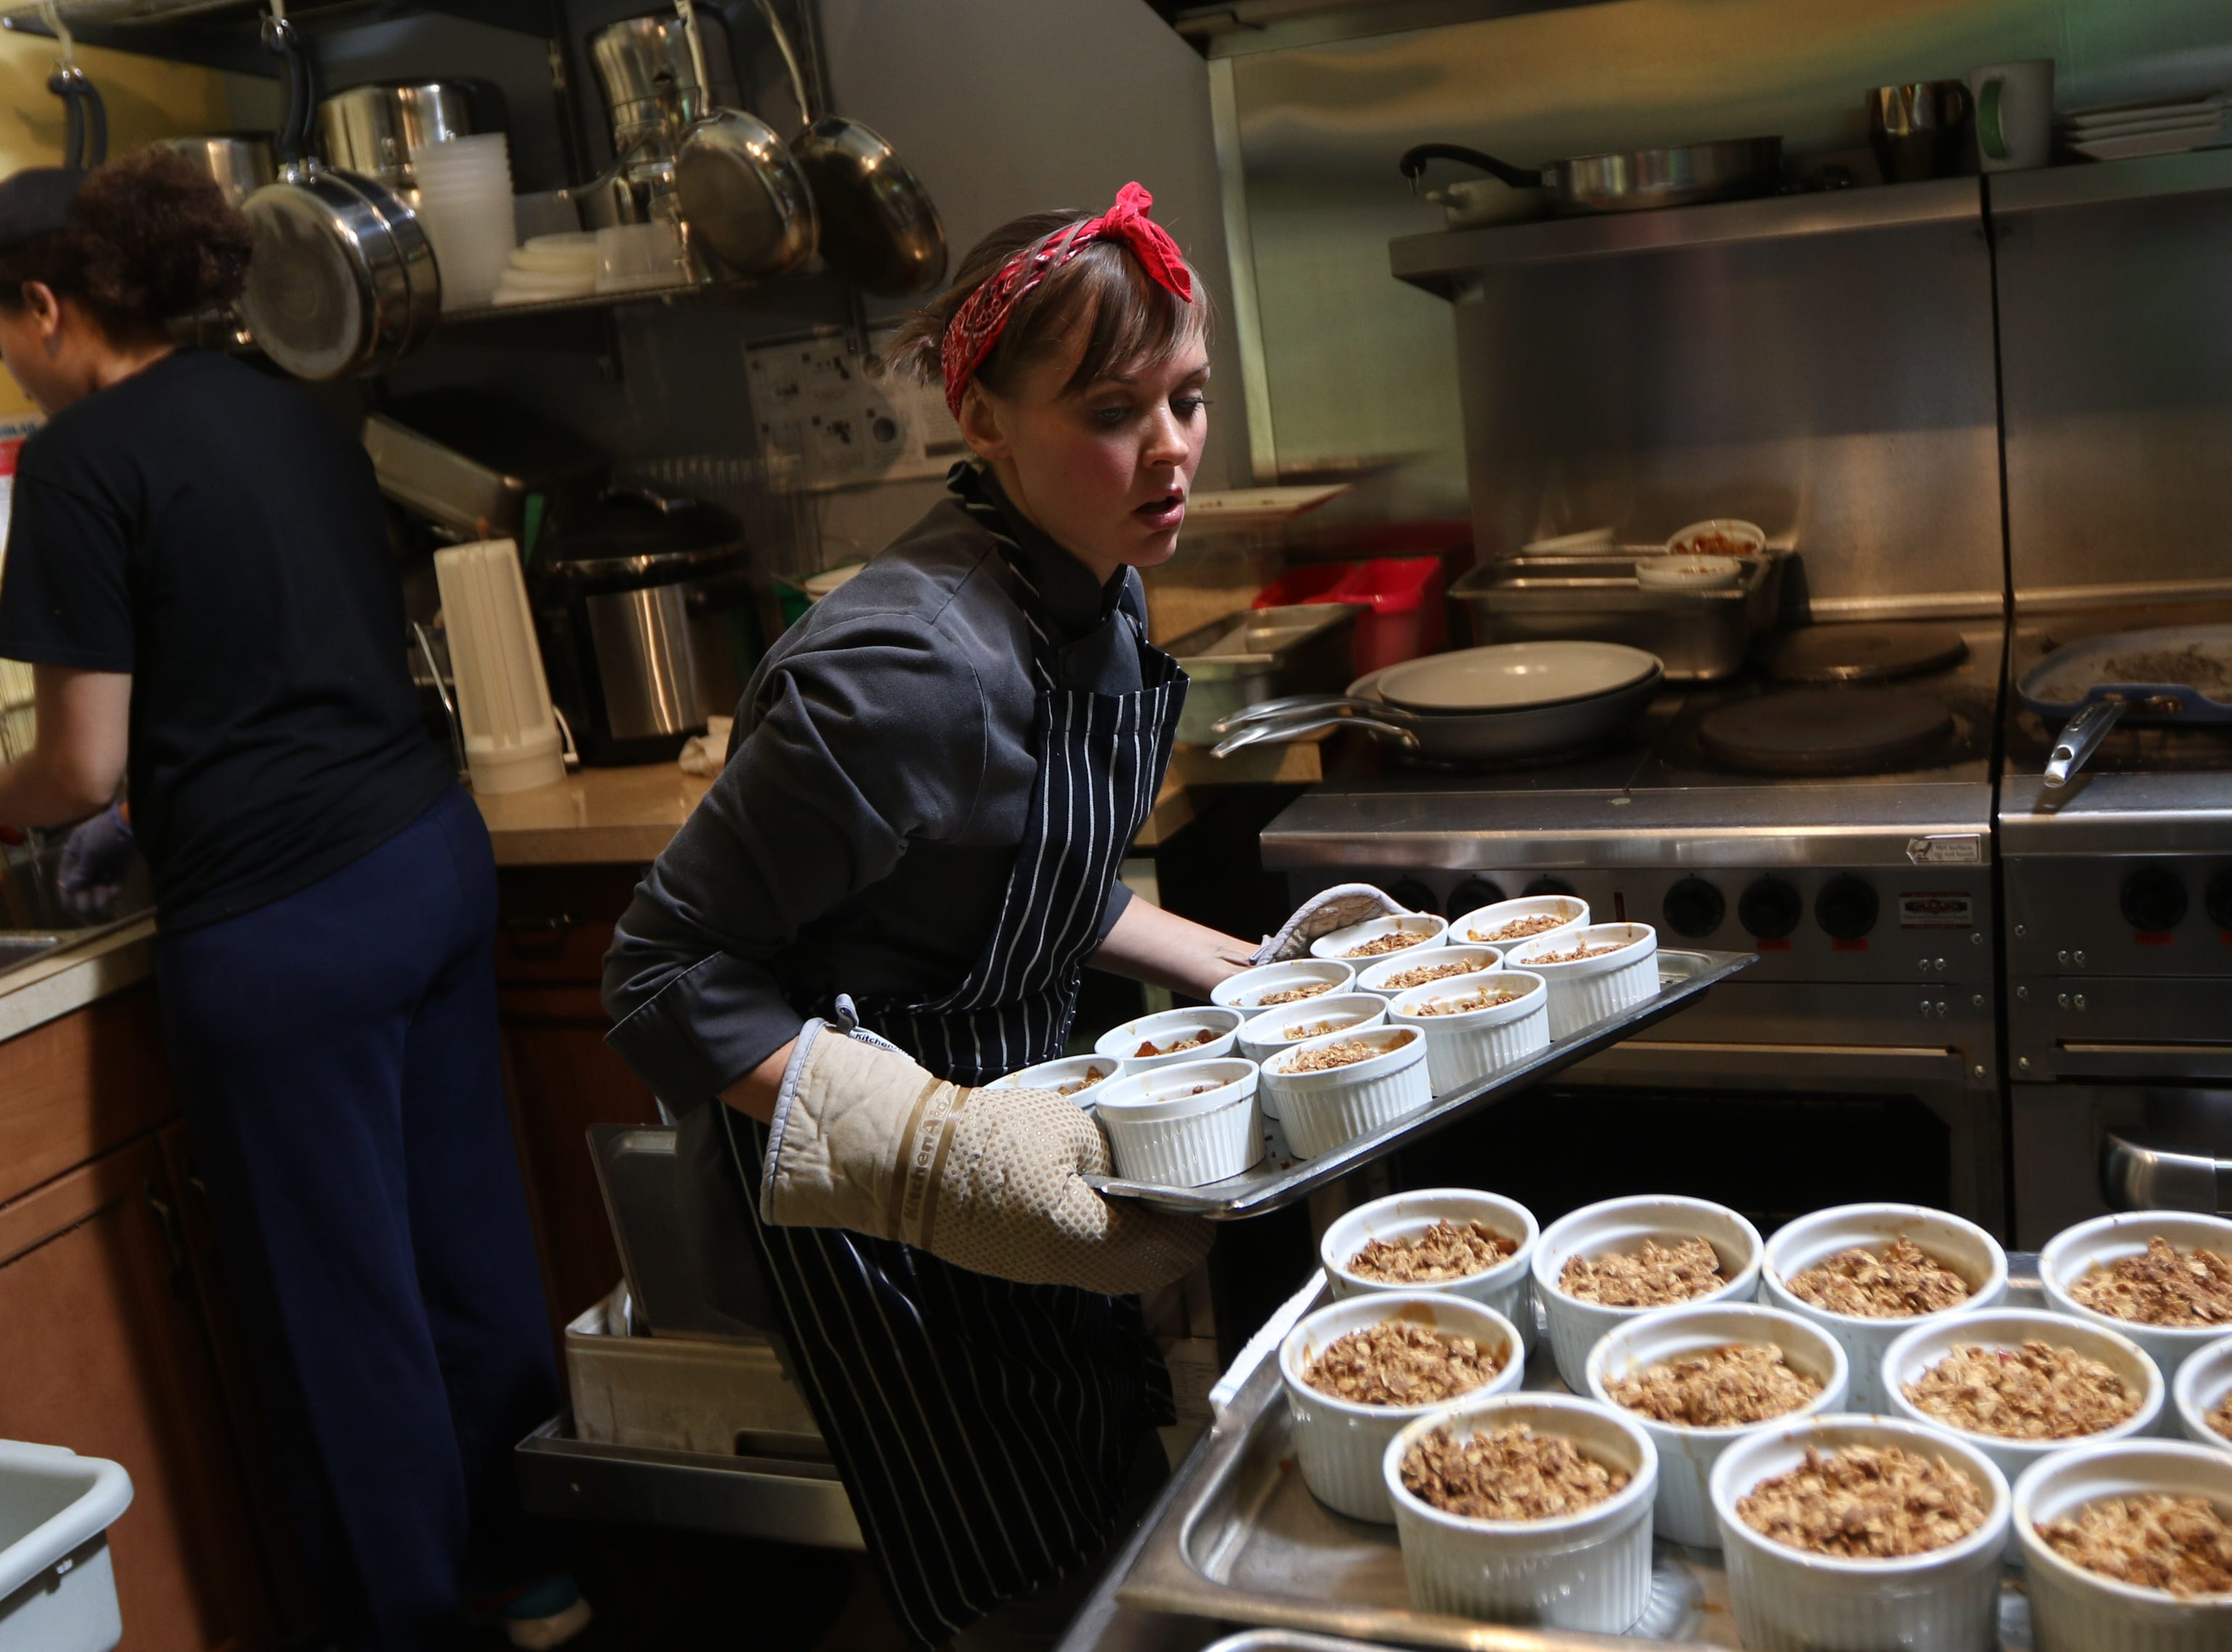 Sally Owens removes her pear and apple crumble from the oven in a crowded Montclair kitchen.  Owens says a pop-up dinner is stressful for her but also provides a positive shot of adrenaline. Wednesday, October 17, 2018.